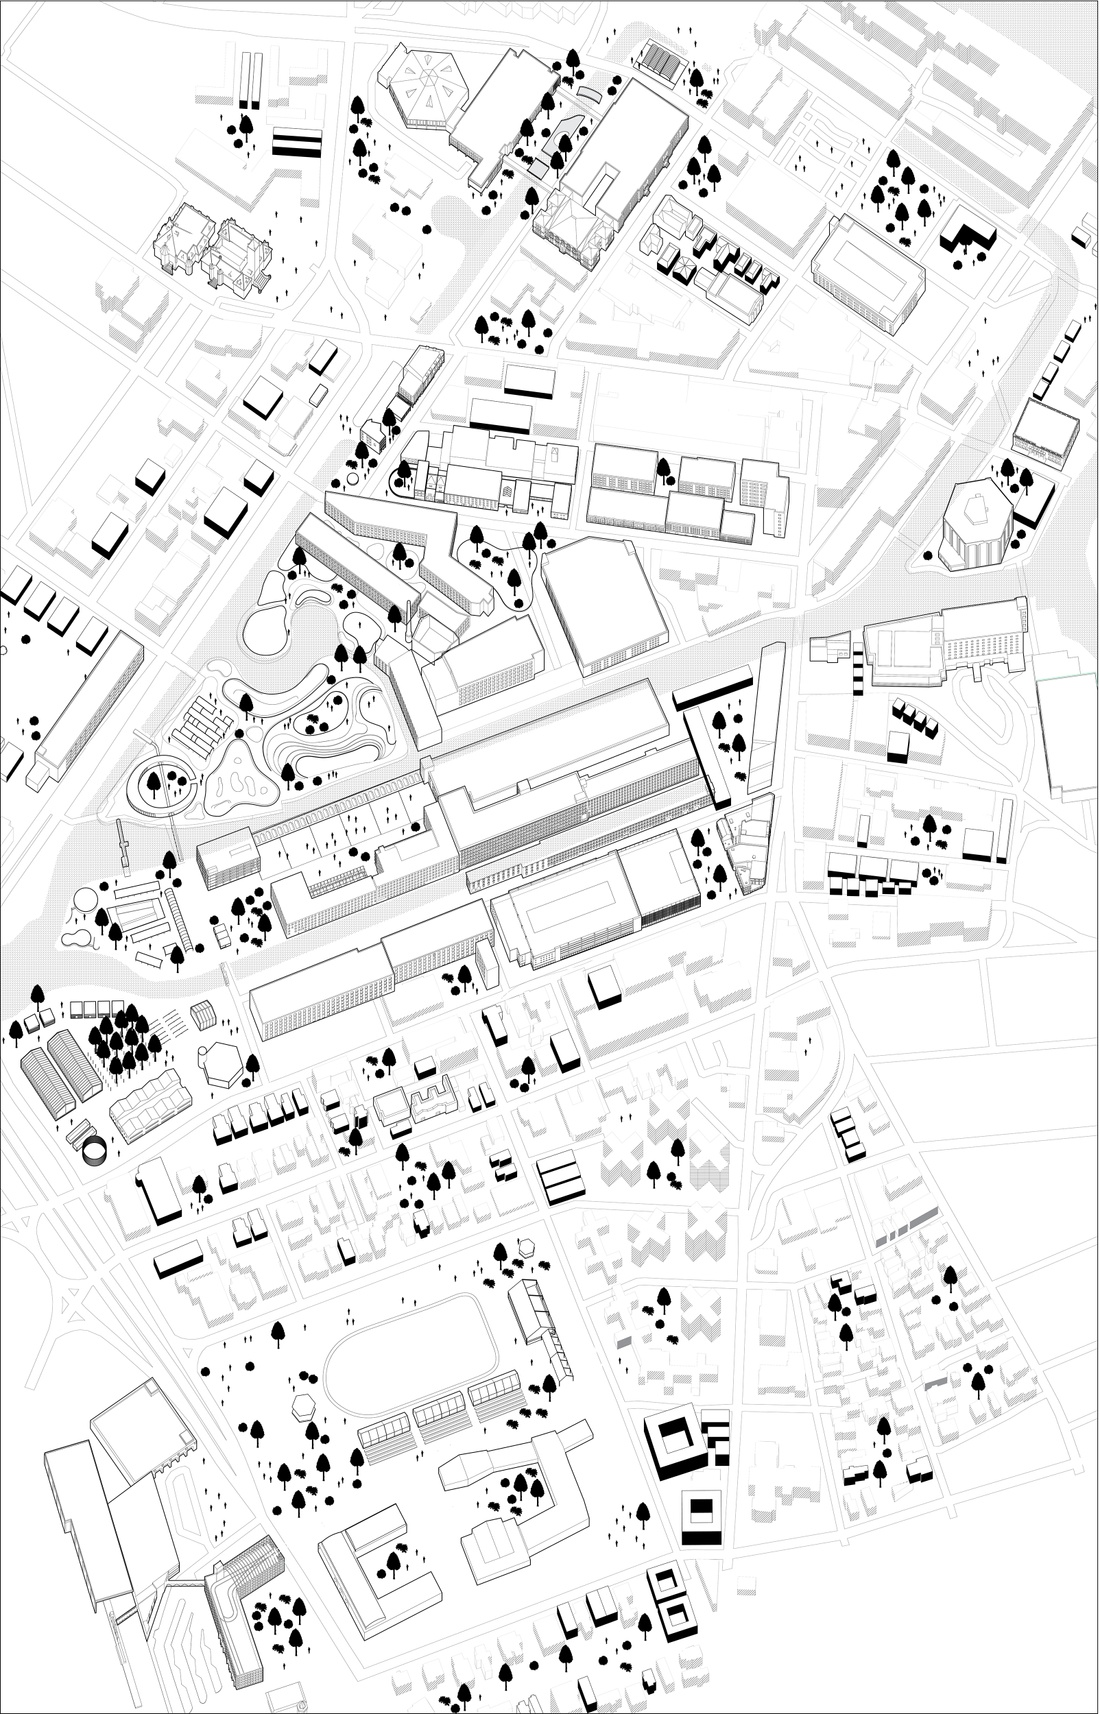 Axonometric view of downtown Lowell